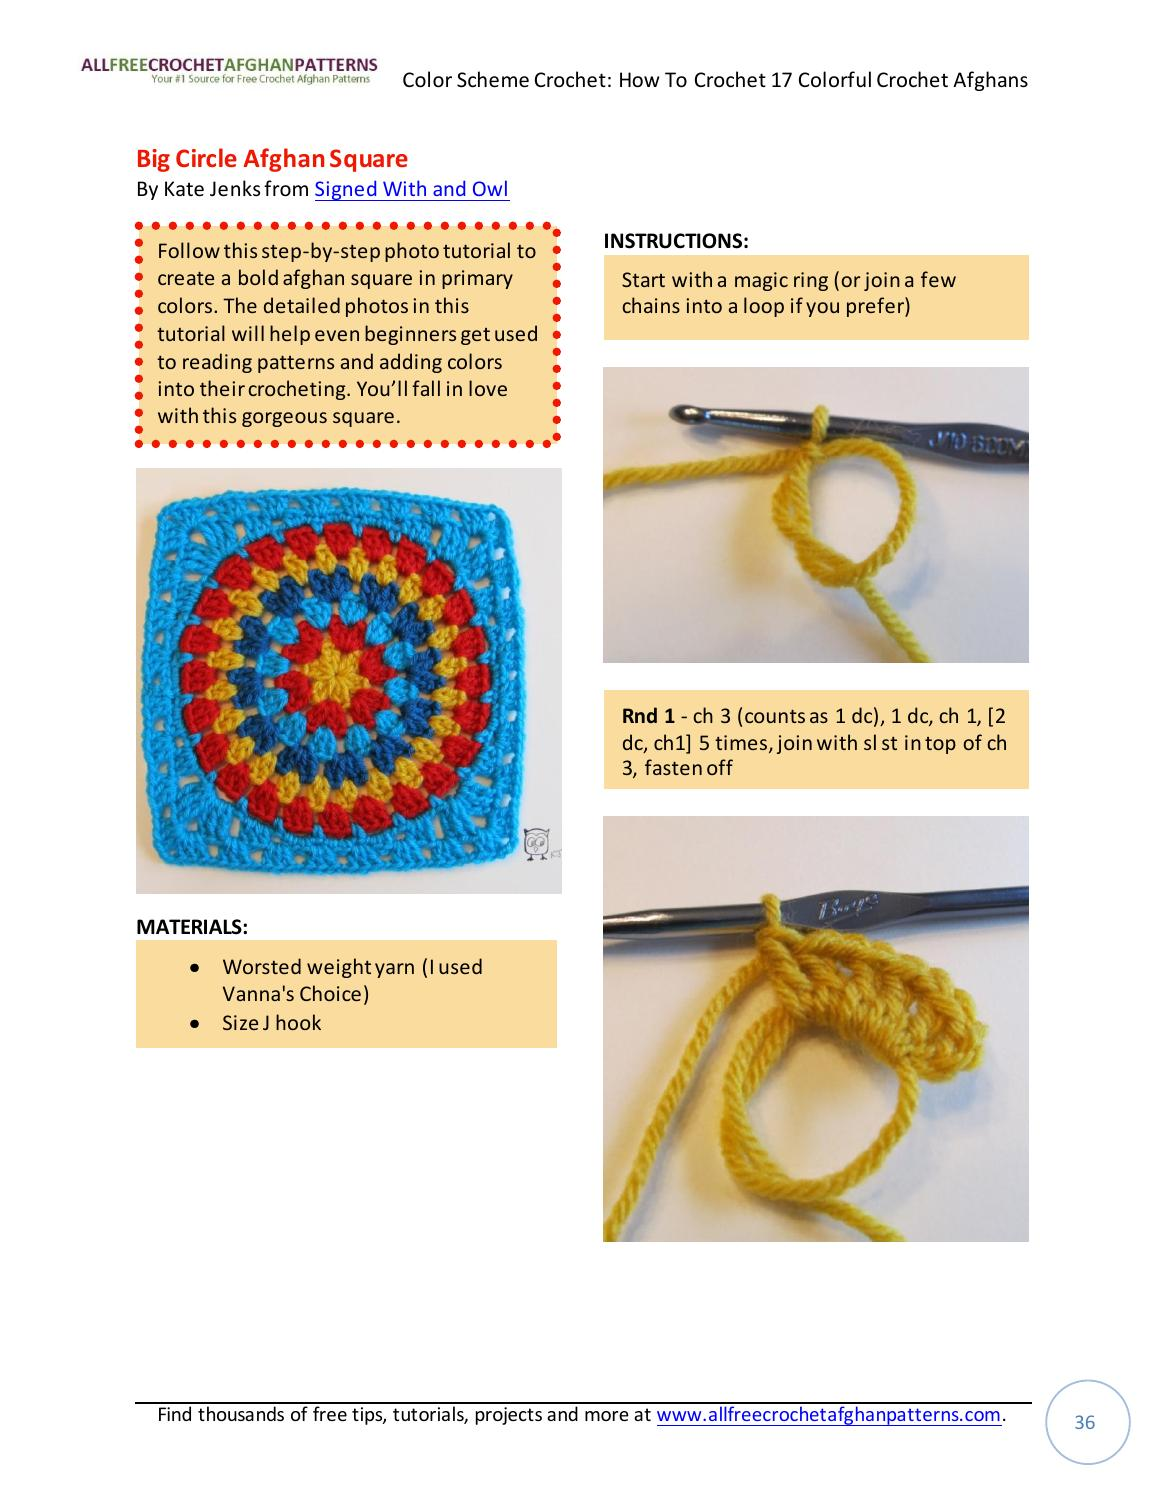 Color scheme crochet how to crochet 17 colorful crochet afghans by color scheme crochet how to crochet 17 colorful crochet afghans by jasmina sizz issuu baditri Images